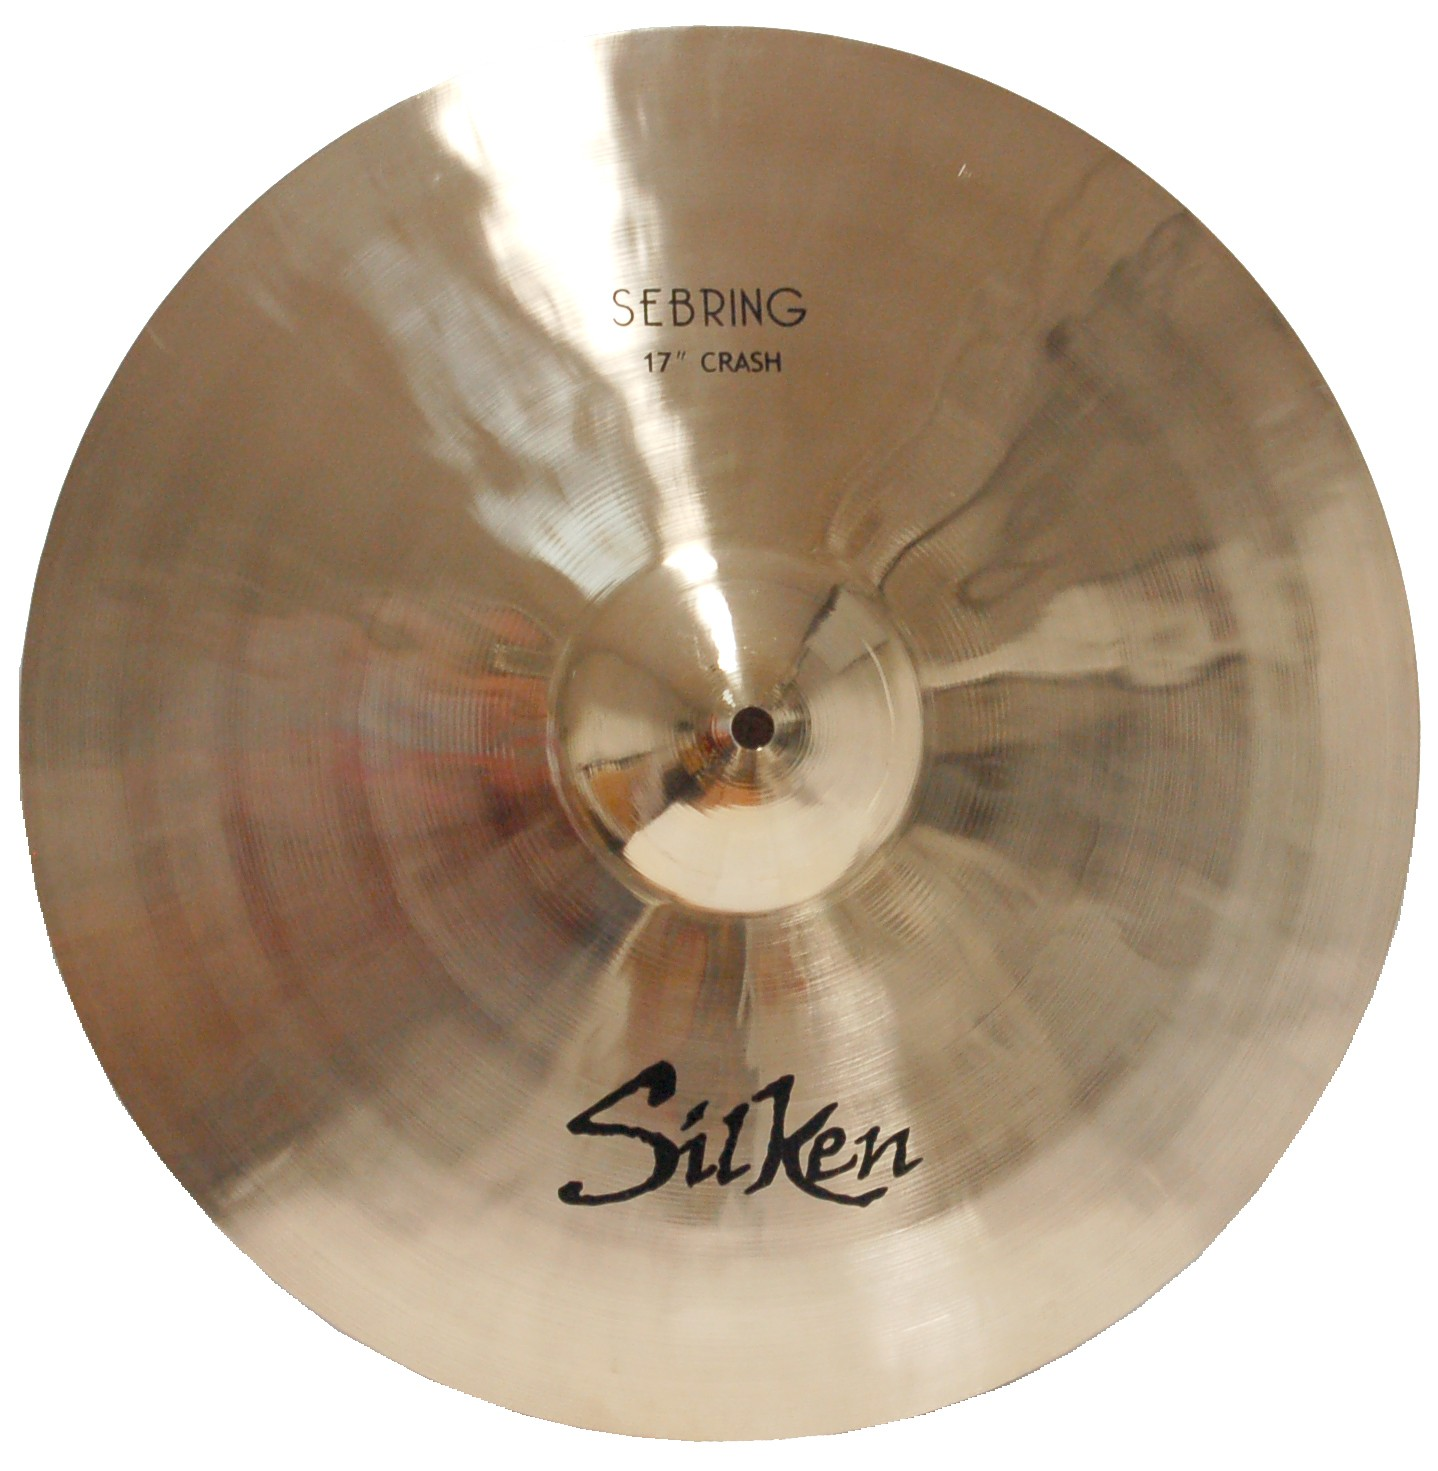 "SILKEN B20 17"" CRASH SEBRING SERIES CYMBAL"